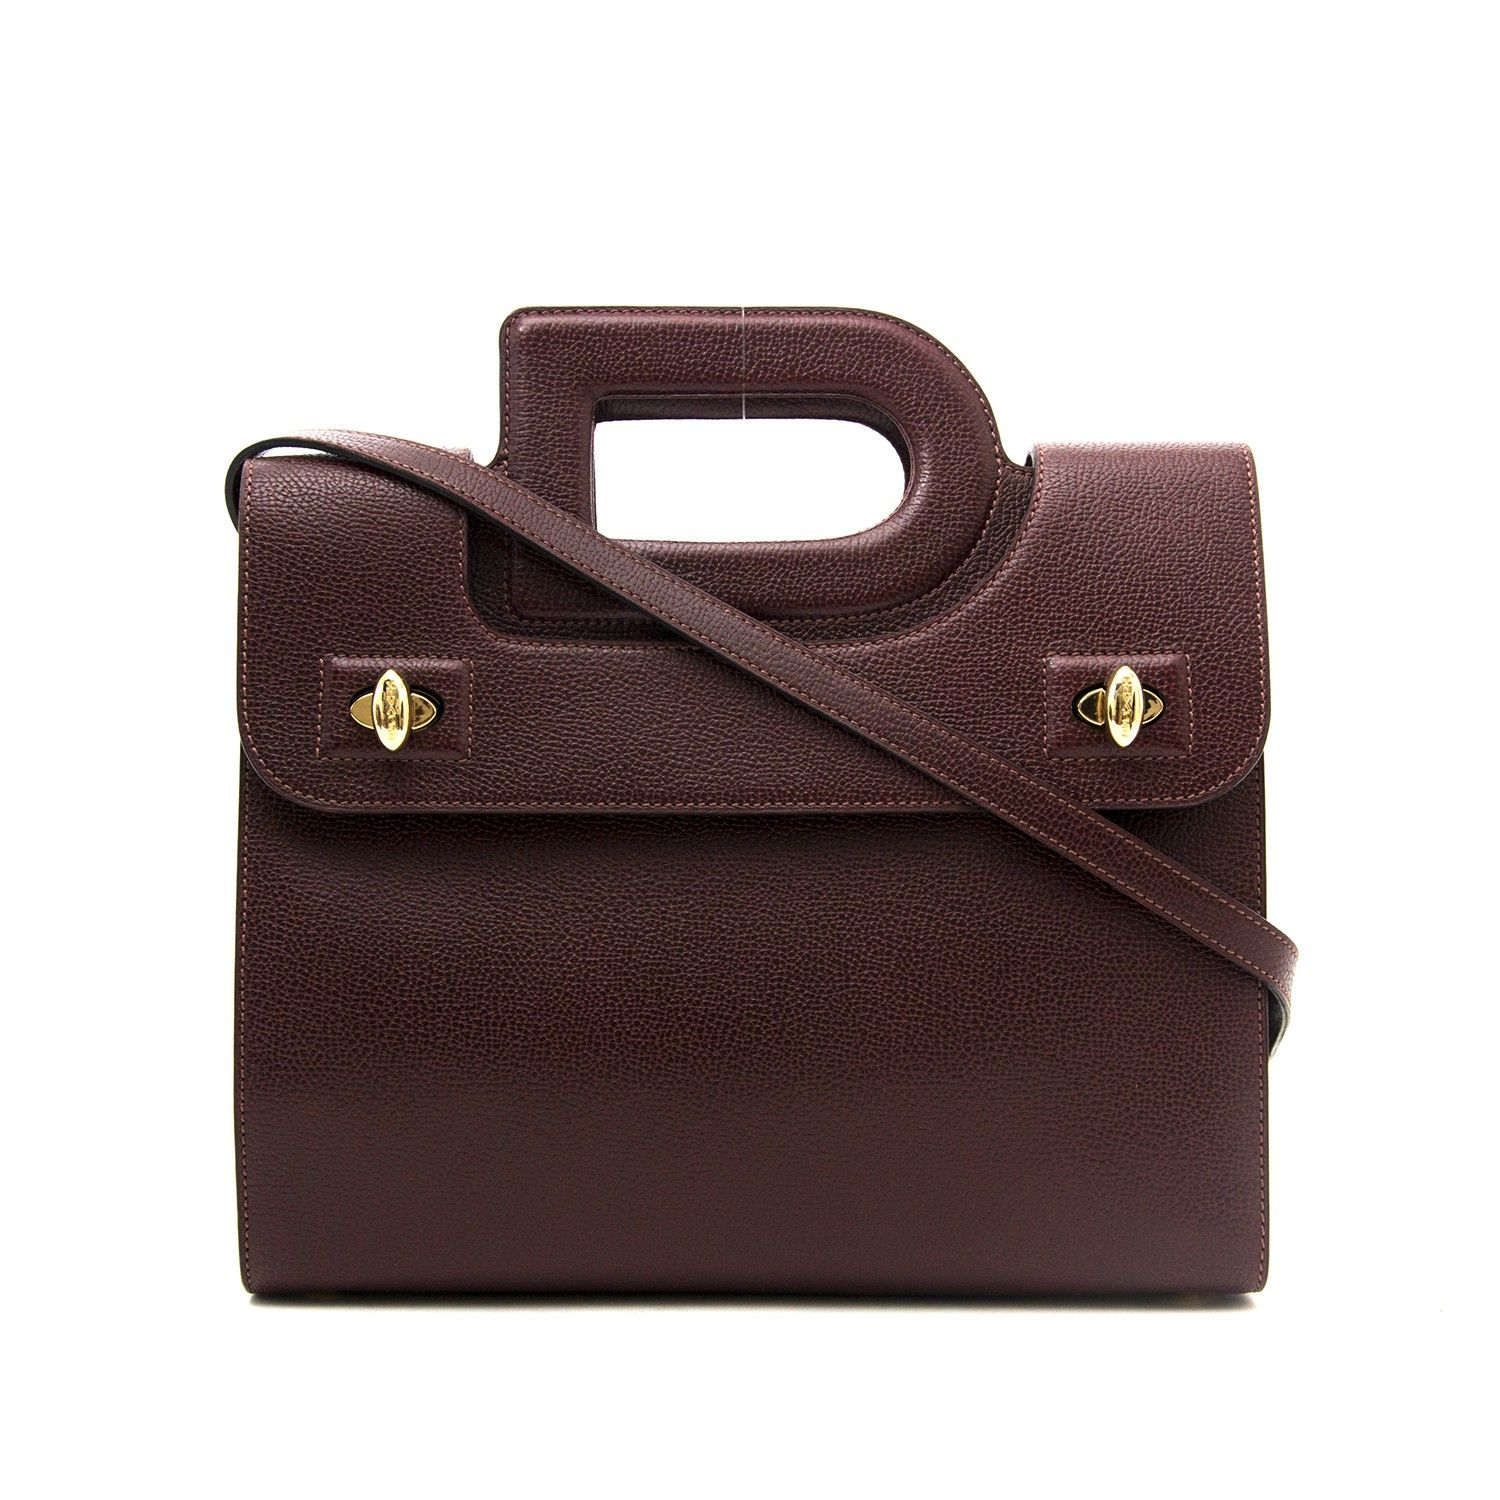 71df6ca21 Labellov Delvaux Burgundy D Handle Bag ○ Buy and Sell Authentic Luxury